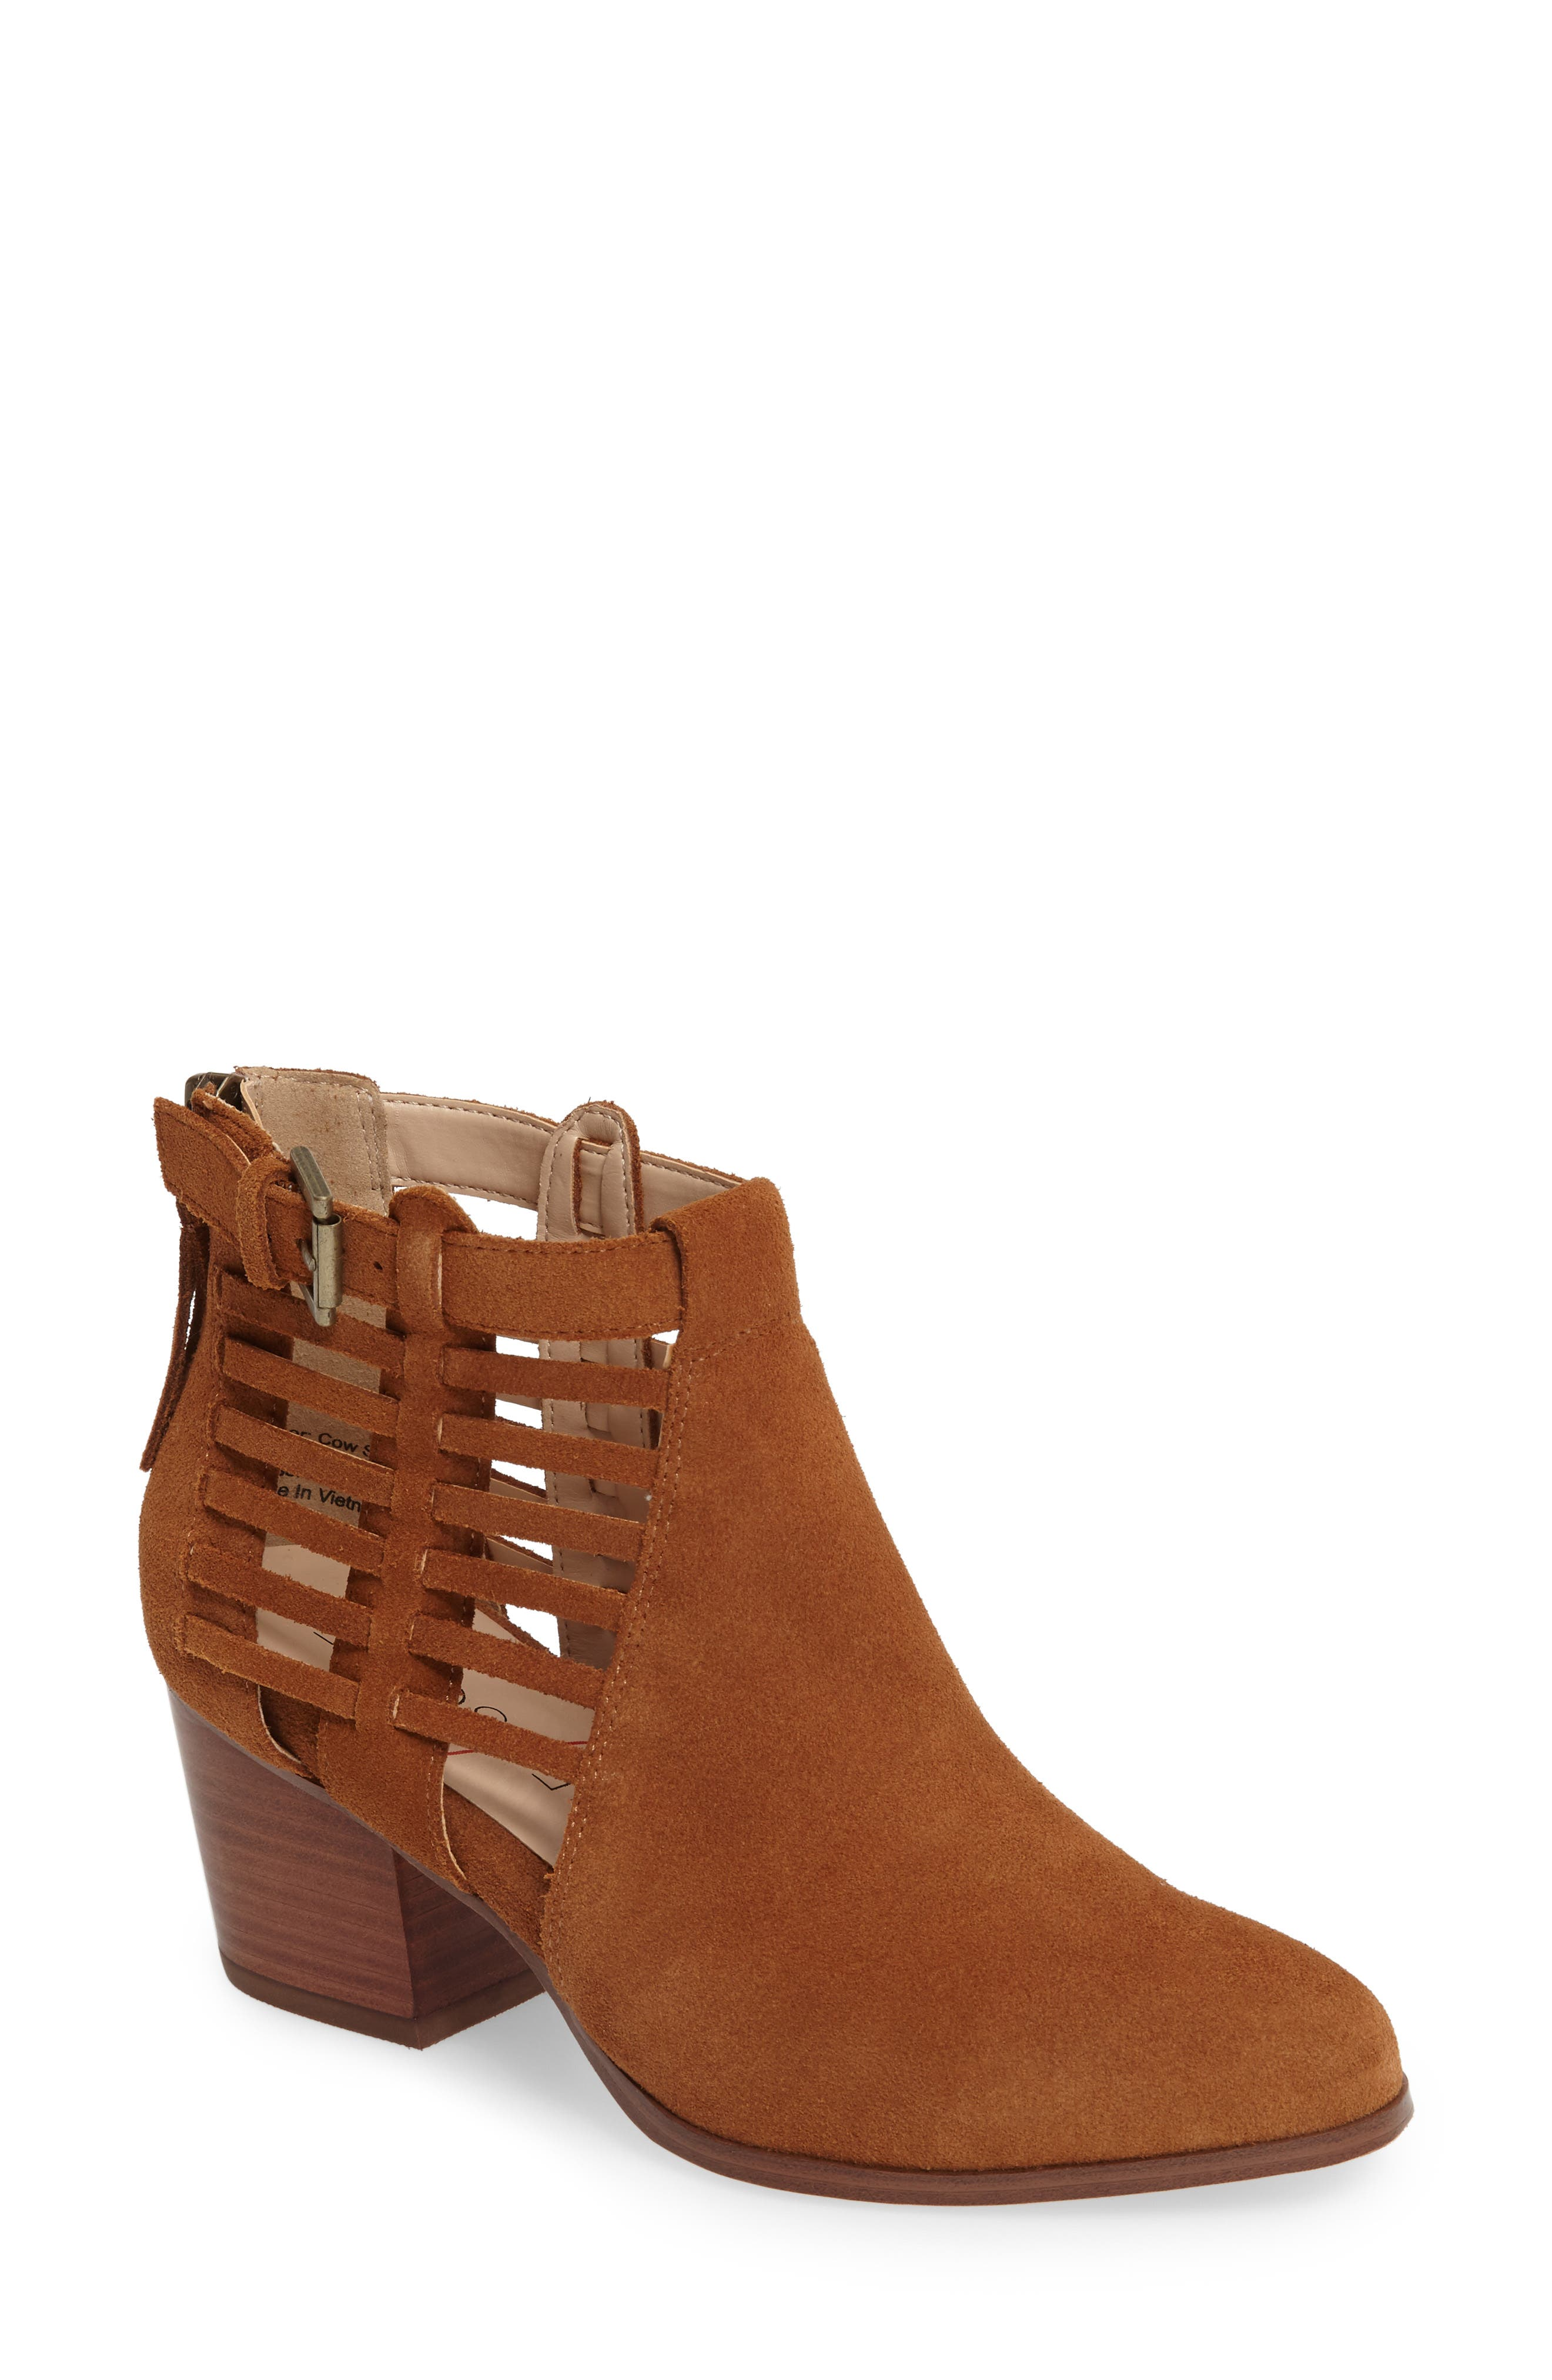 Alternate Image 1 Selected - Sole Society Ash Bootie (Women)